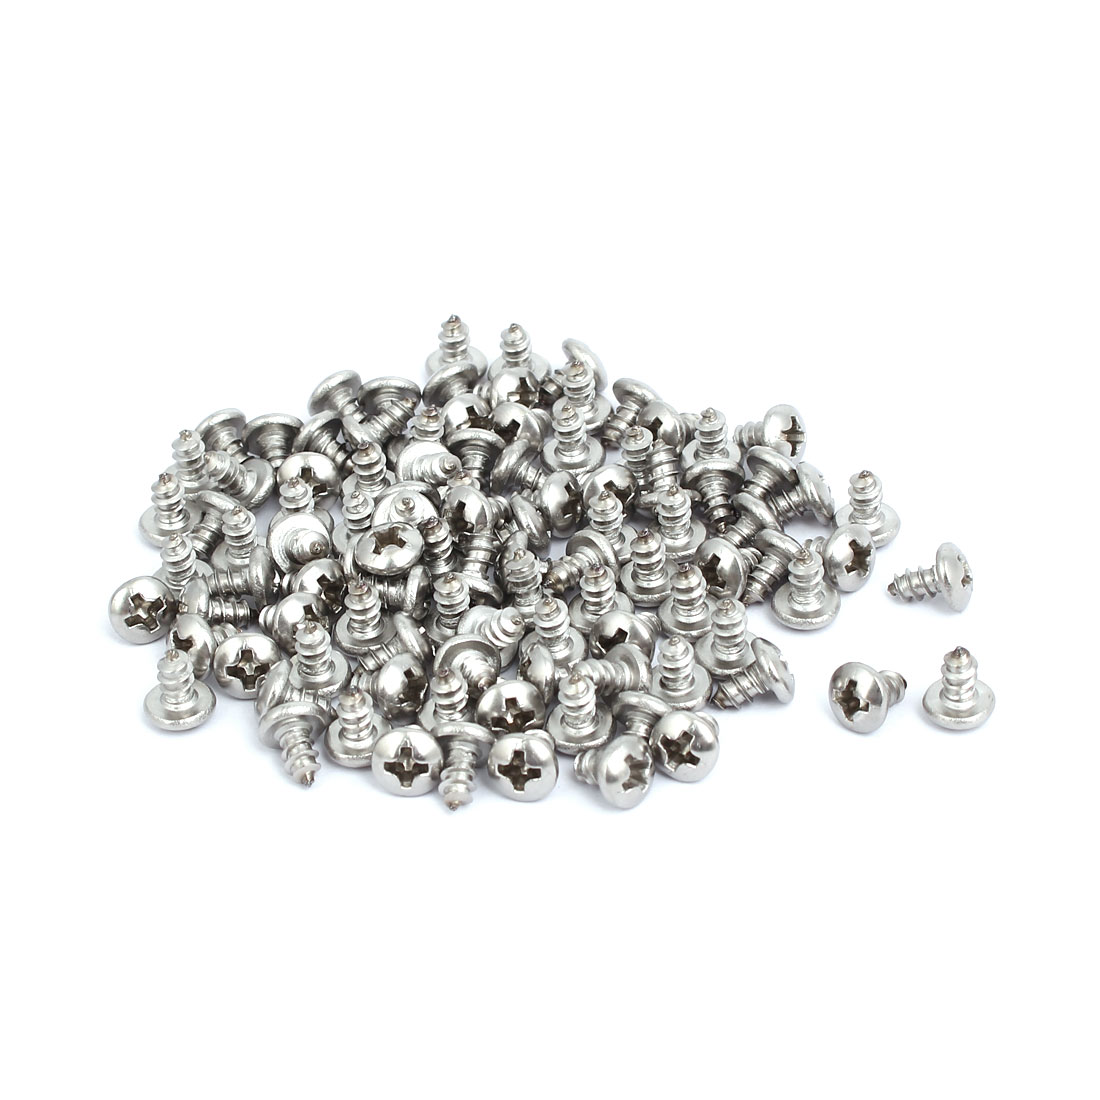 M3.5x6mm 304 Stainless Steel Phillips Drive Pan Head Self Tapping Screws 100pcs